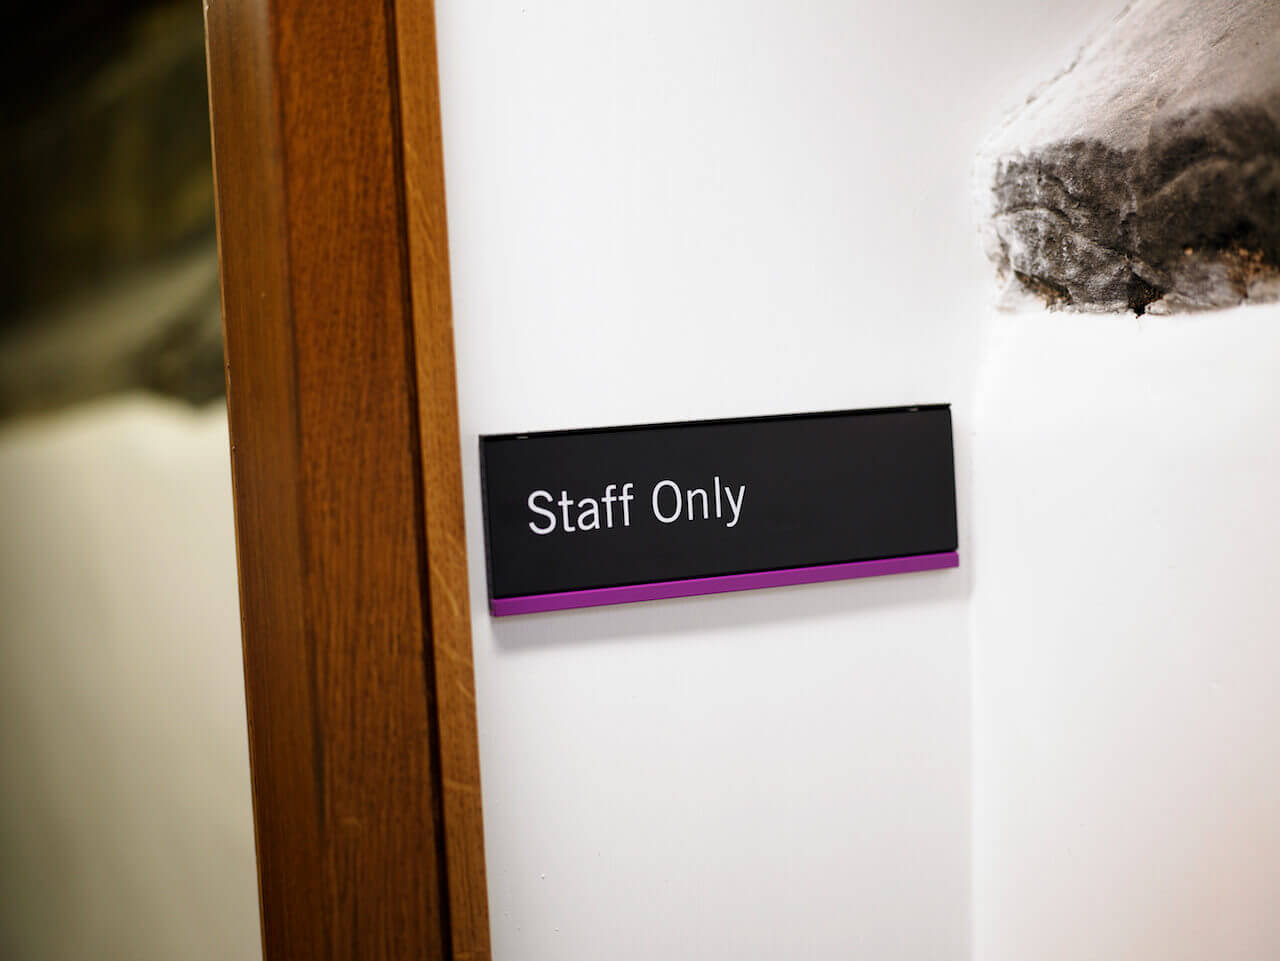 Staff Only door sign at Palace Green Library